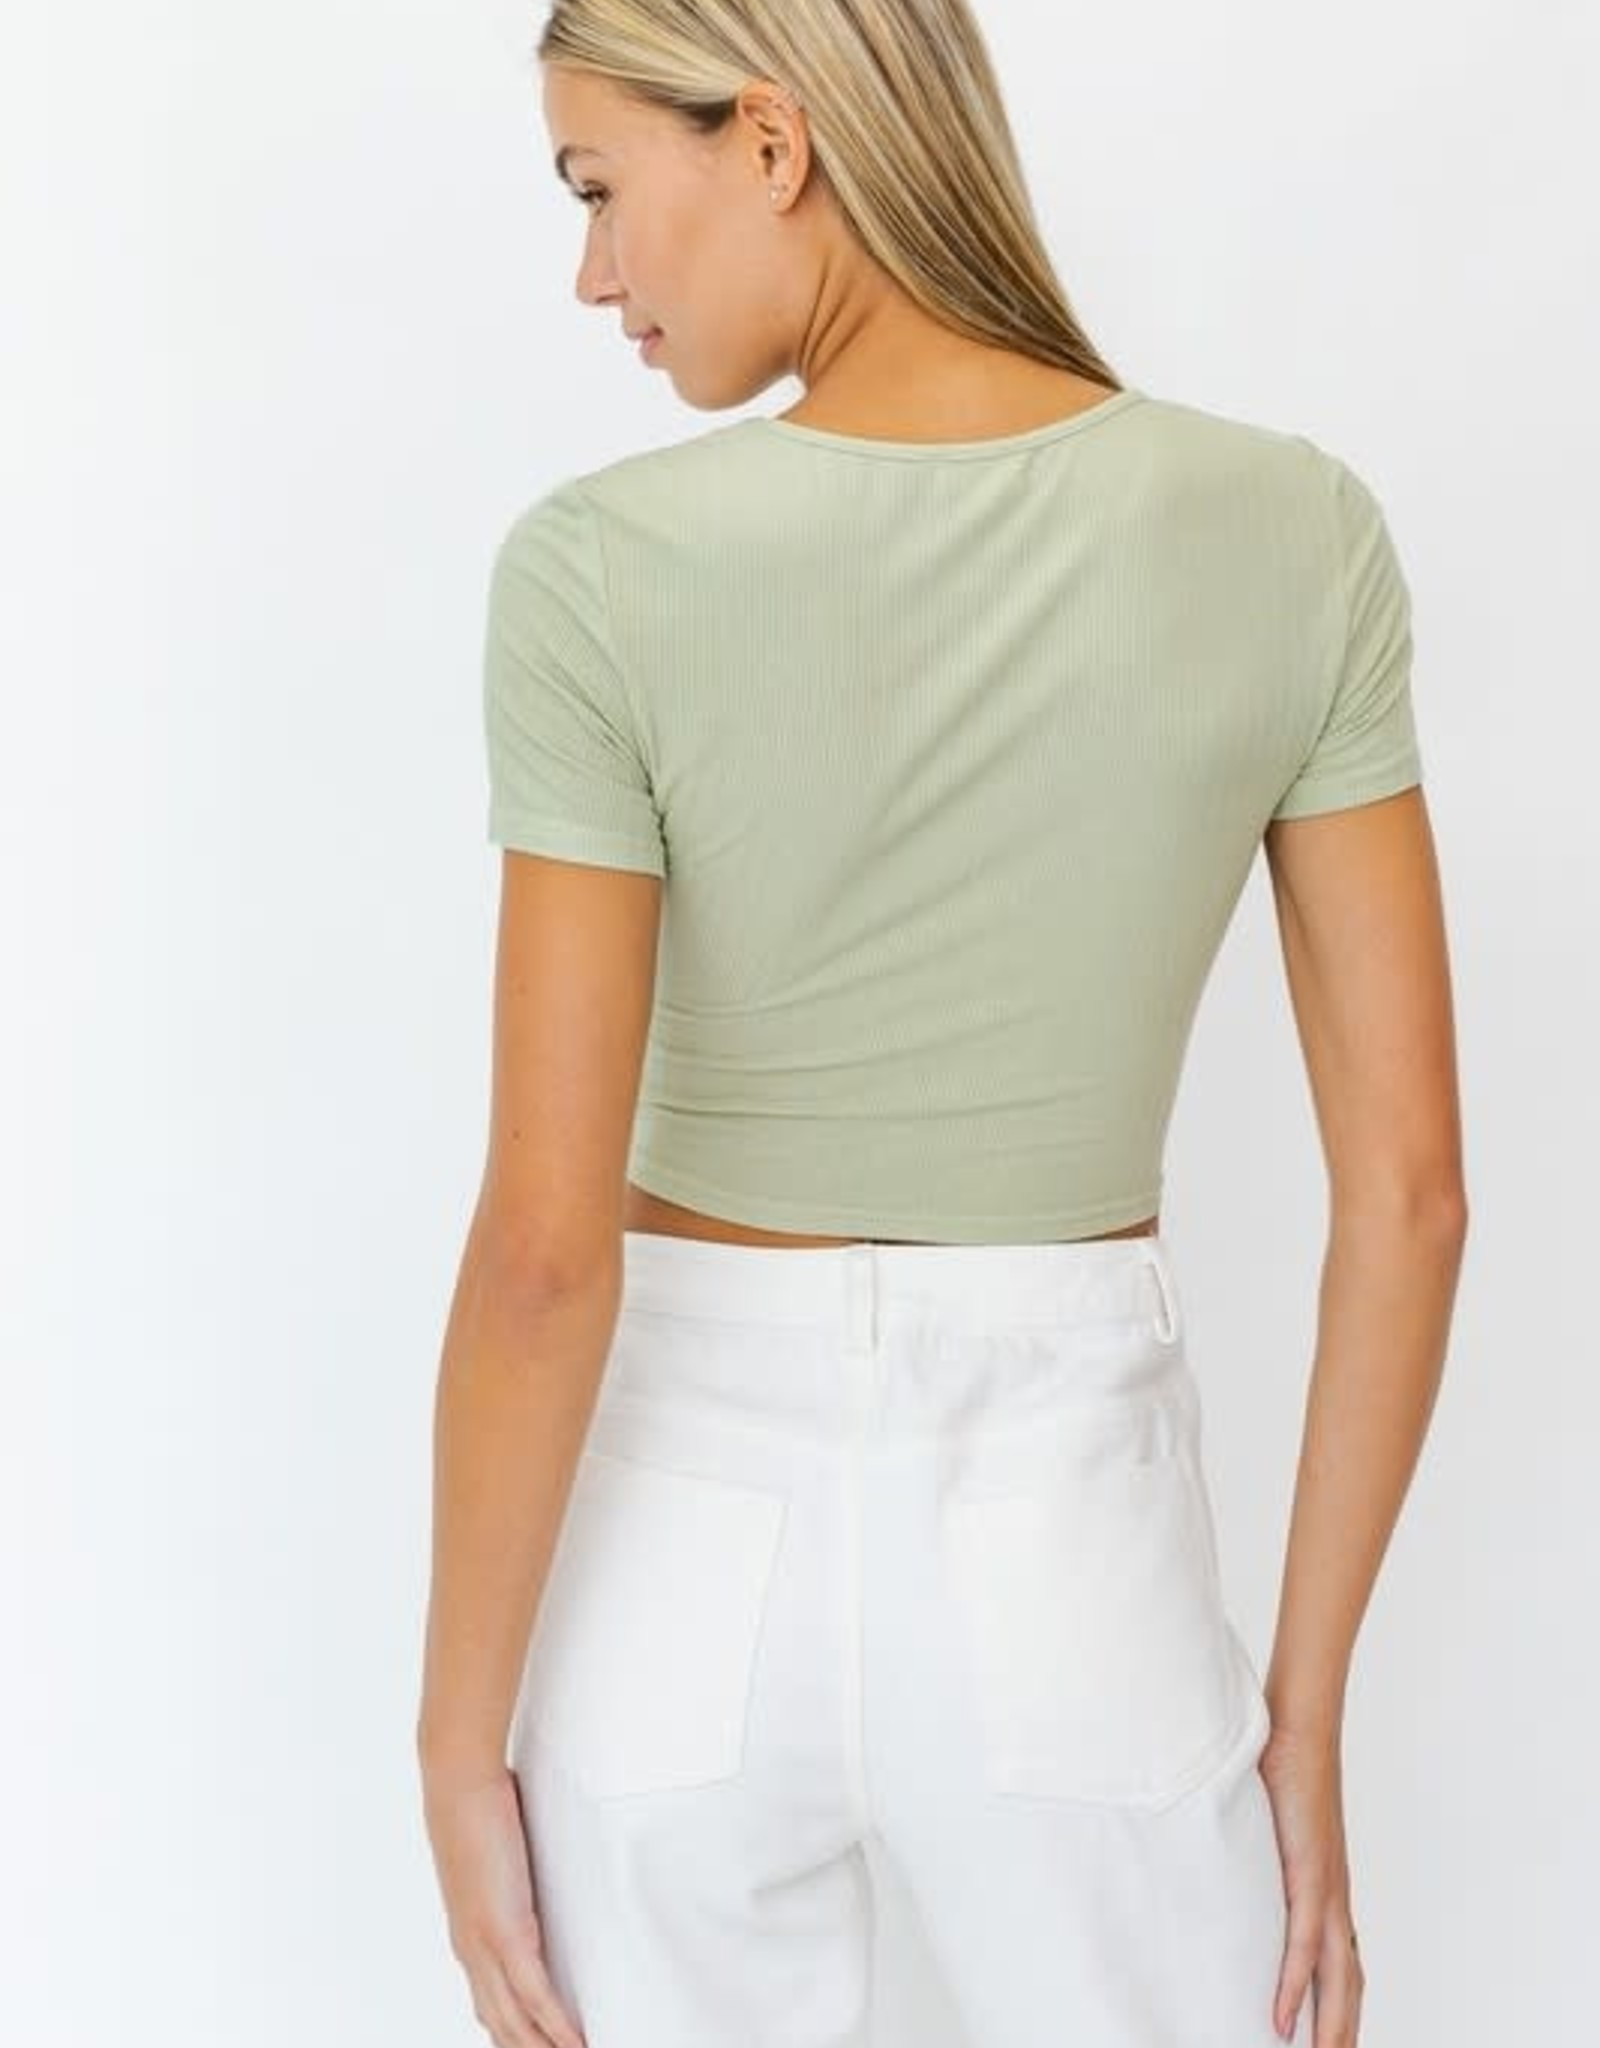 The Wrap it Top